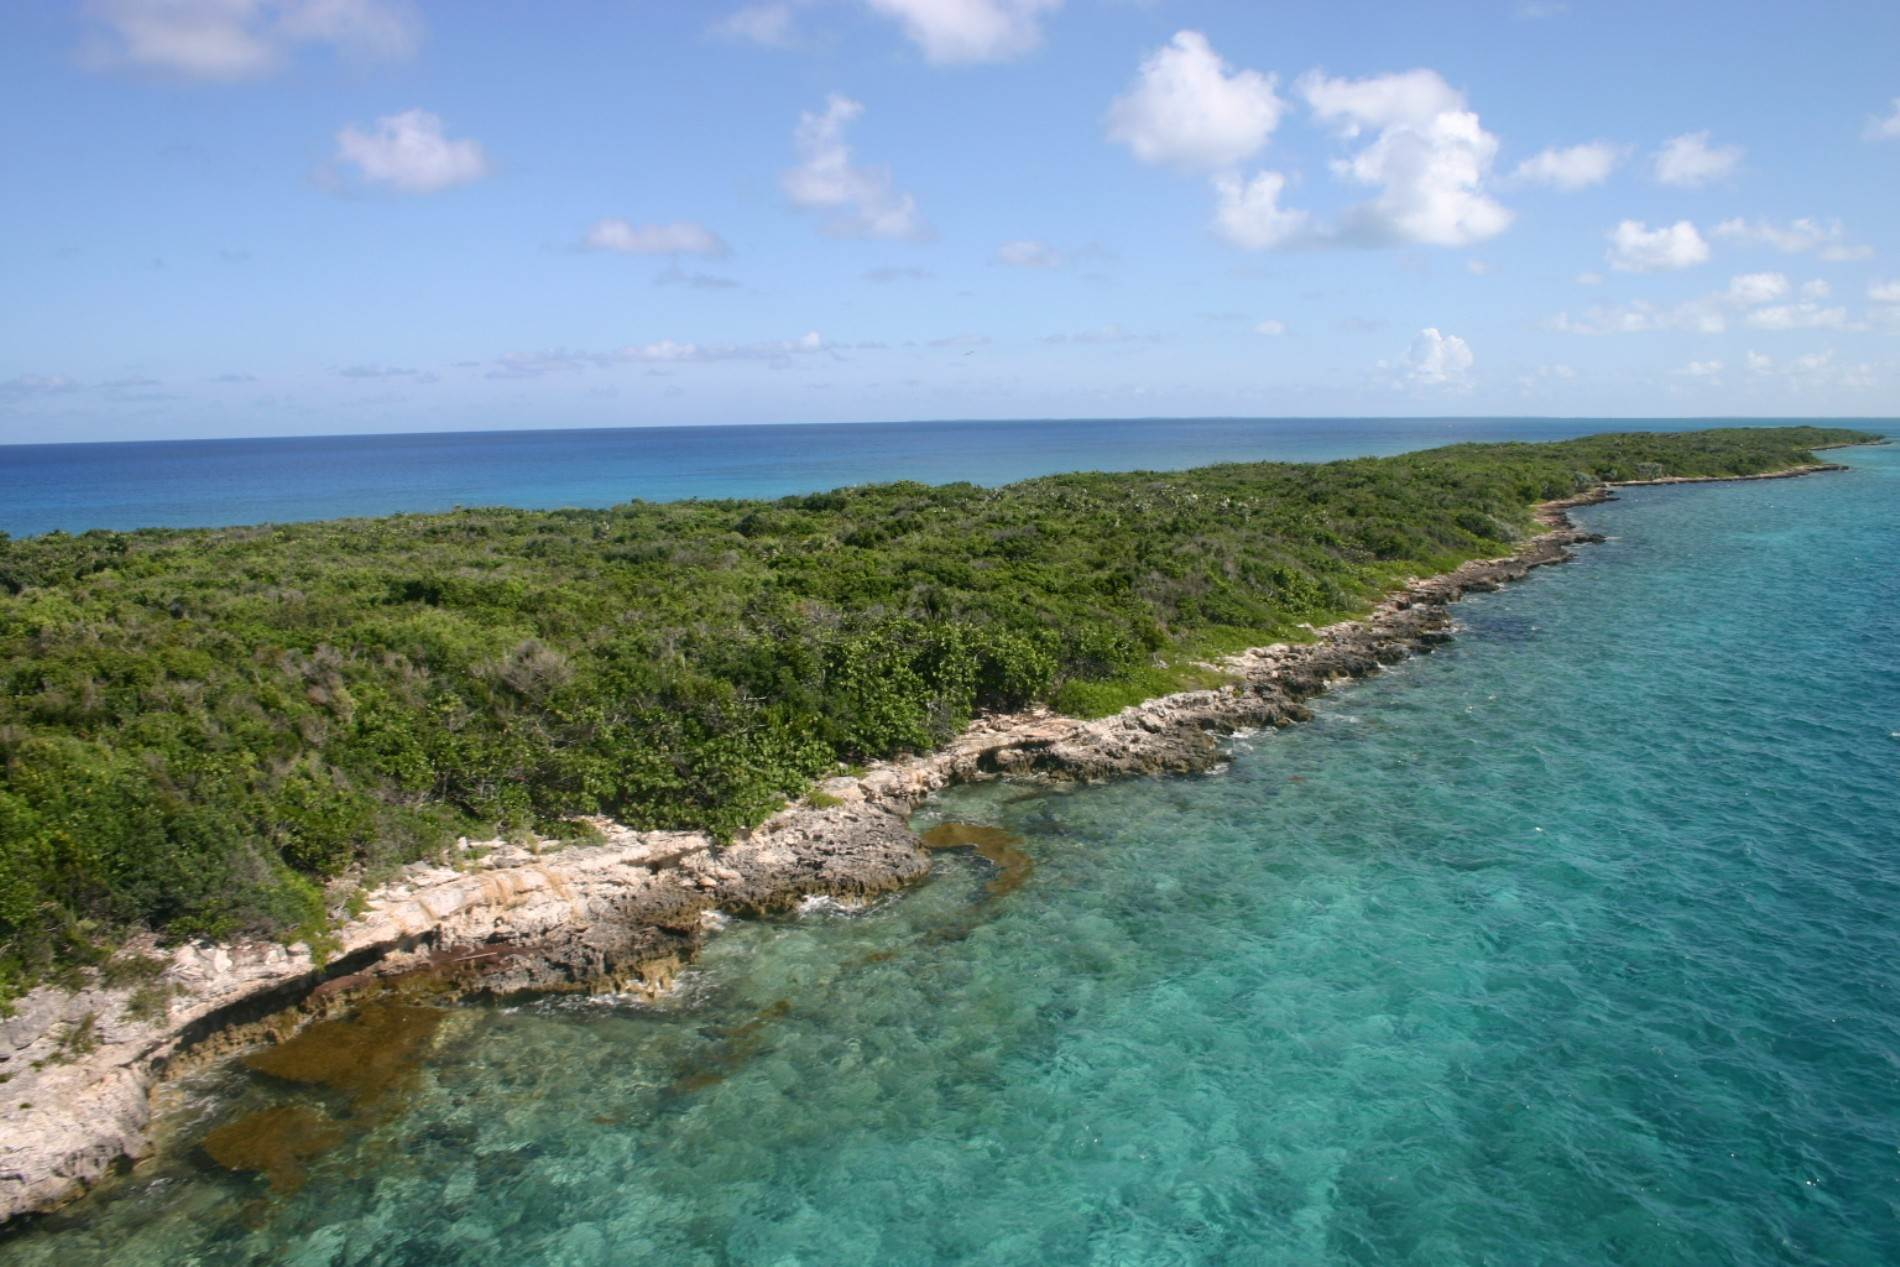 Private Islands for Sale at North Pimlico Private Island - MLS 37991 Eleuthera, Bahamas